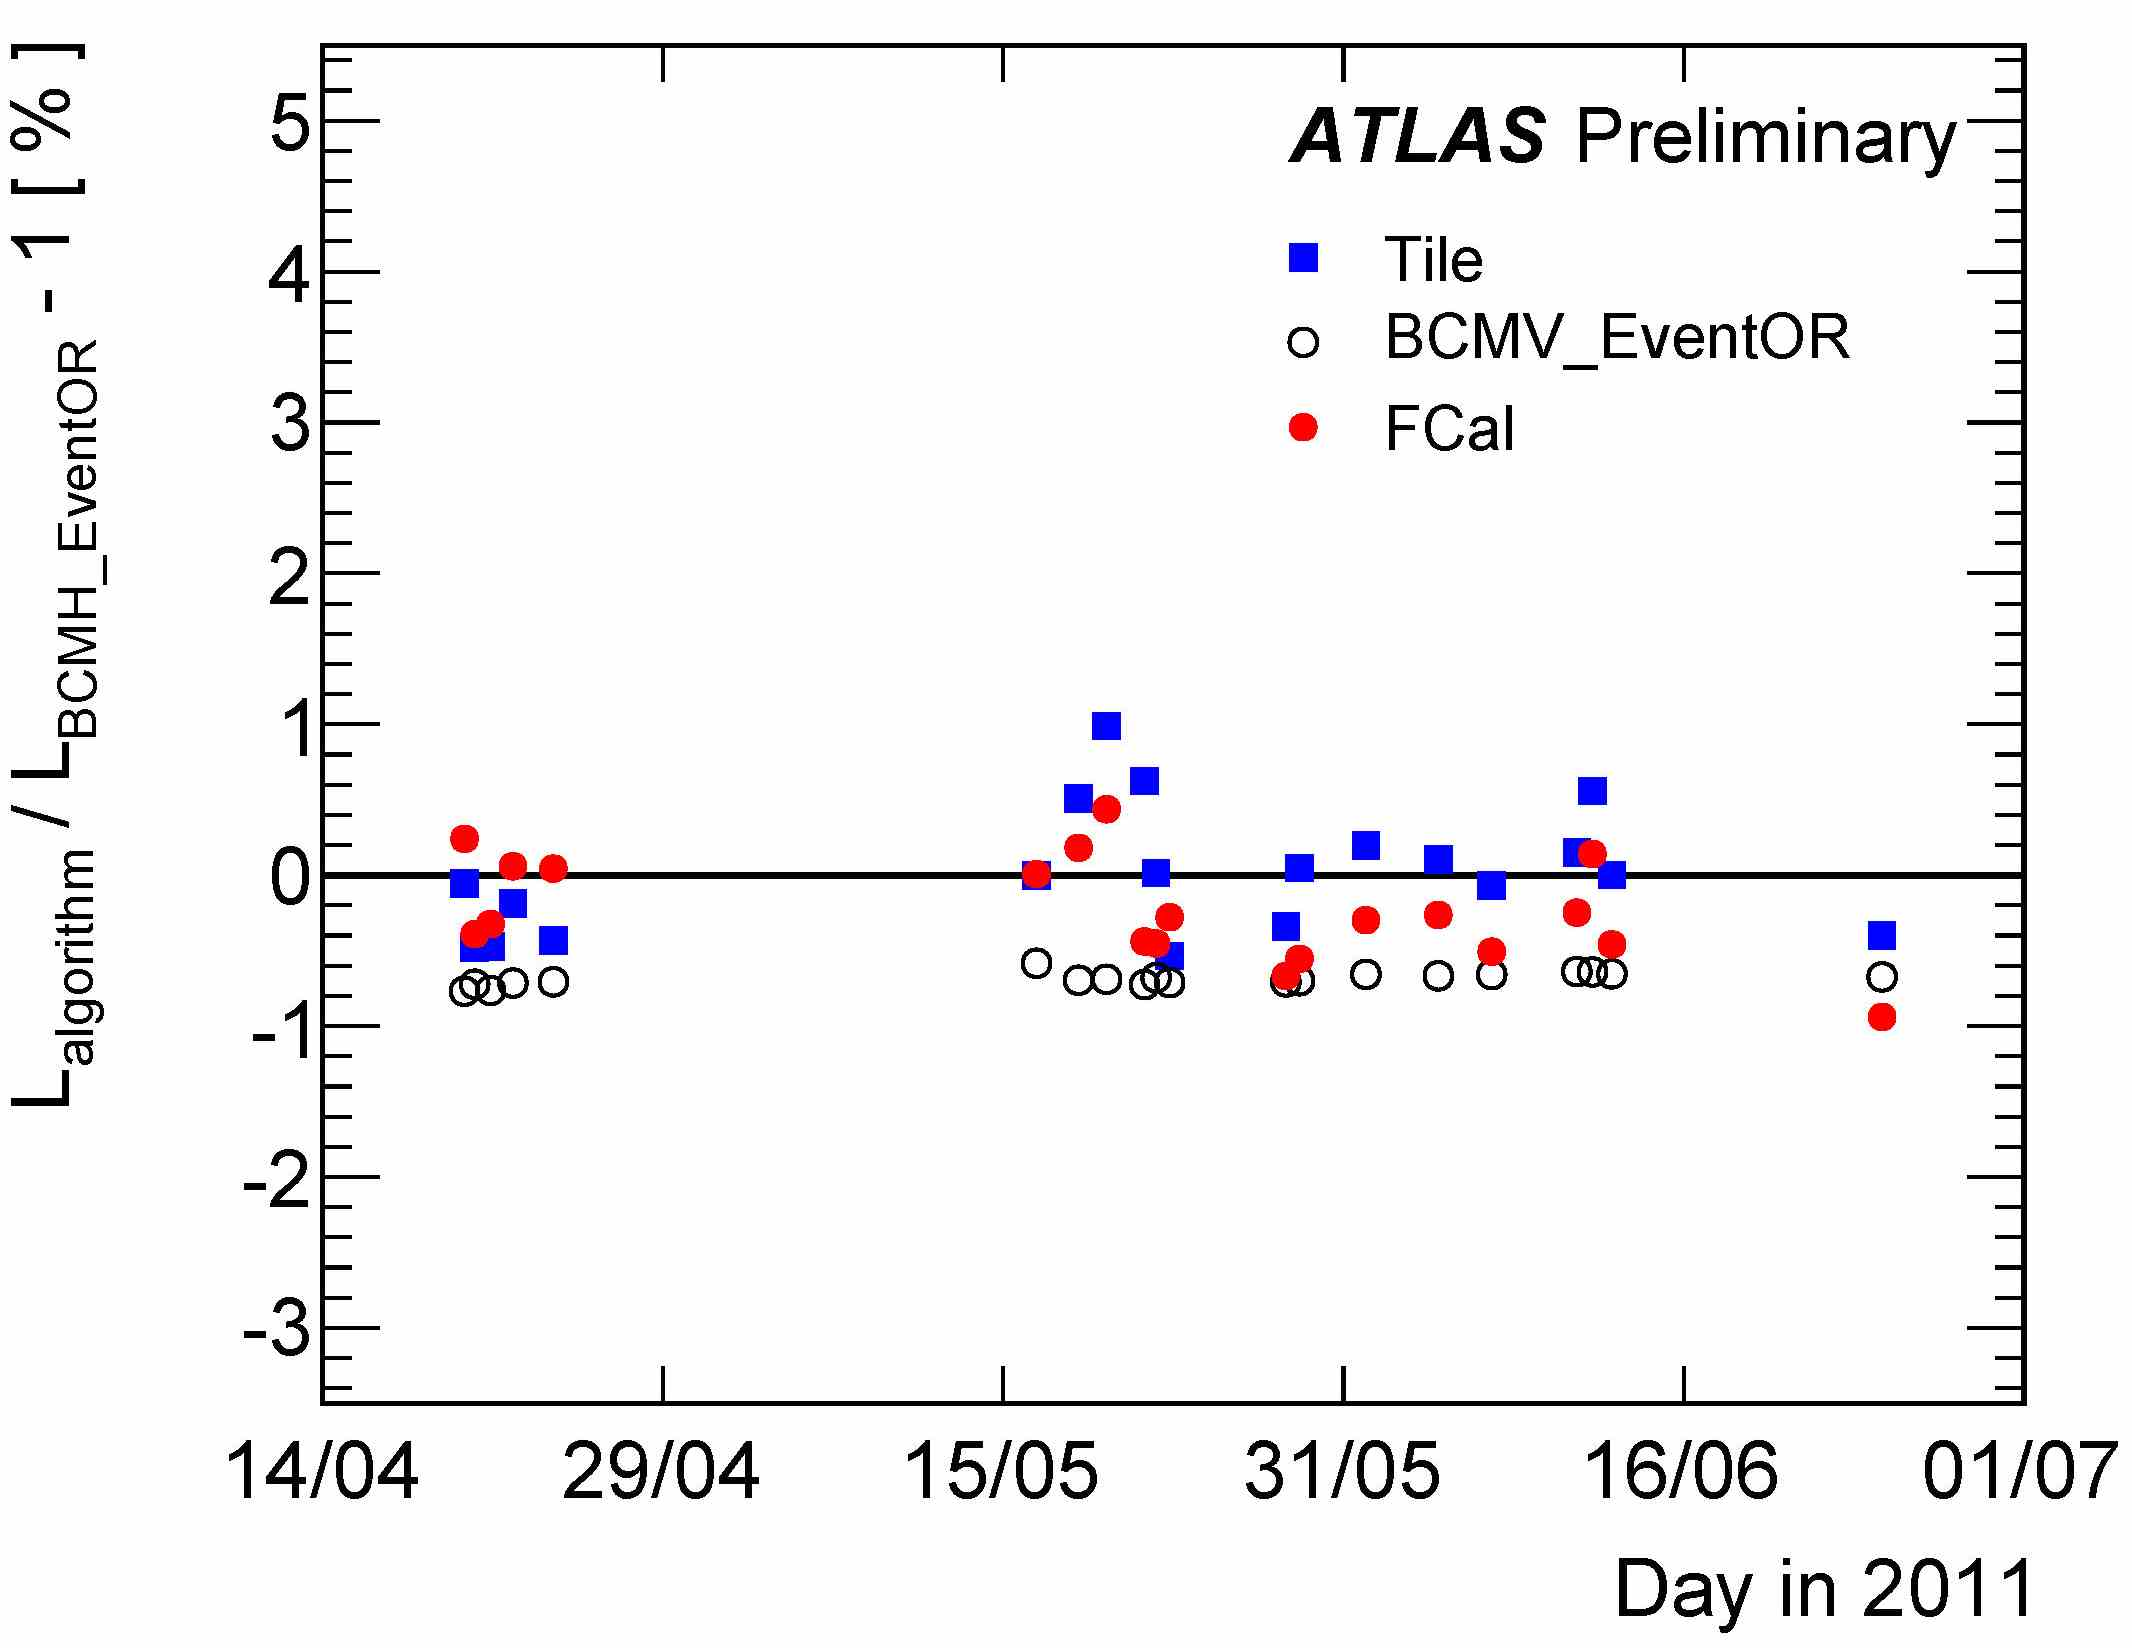 https://atlas.web.cern.ch/Atlas/GROUPS/DATAPREPARATION/PublicPlots/2011/Luminosity/timeStability2.jpg